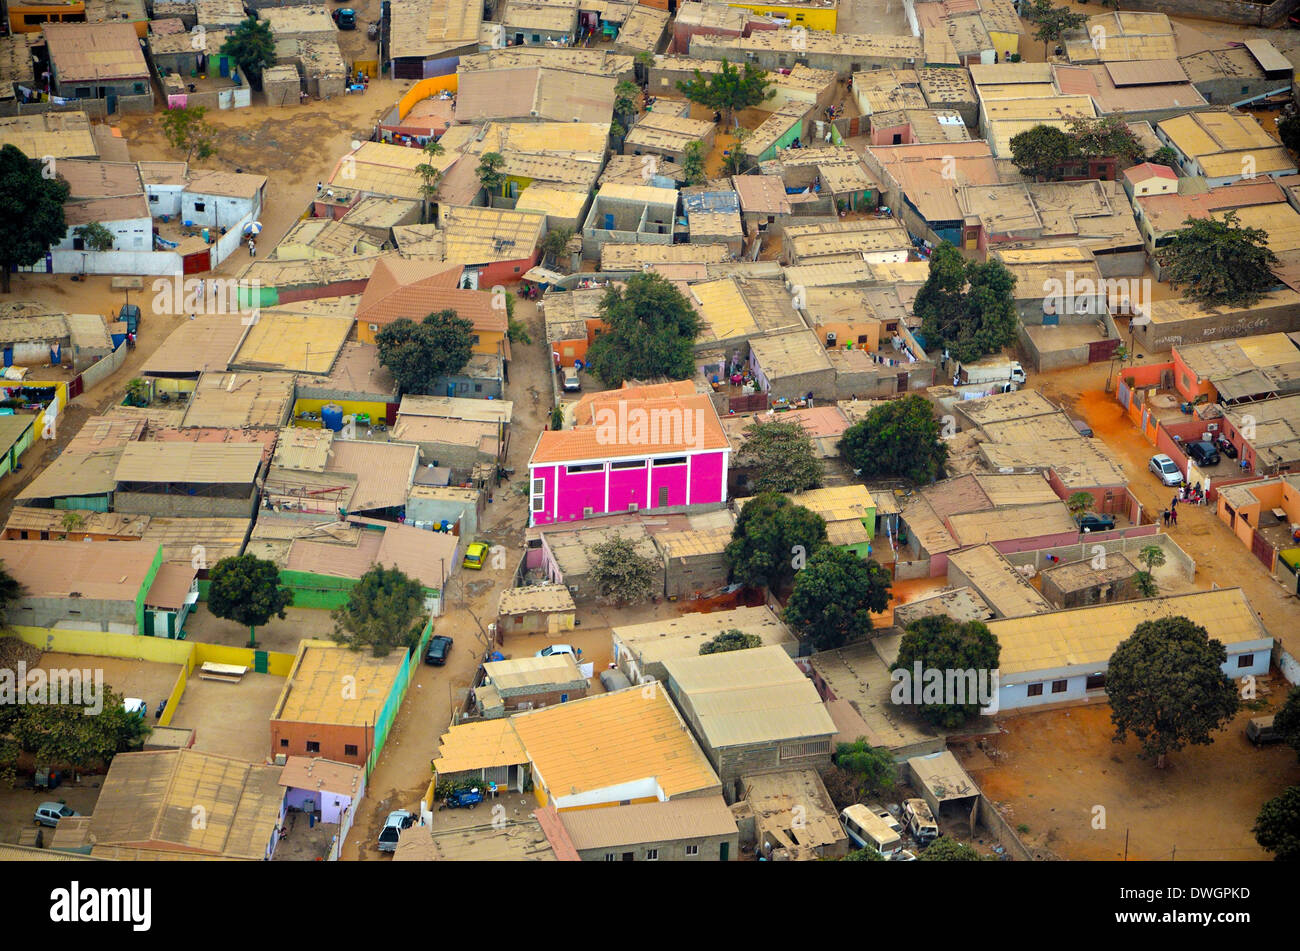 Luanda from the air. Angola, Africa Stock Photo